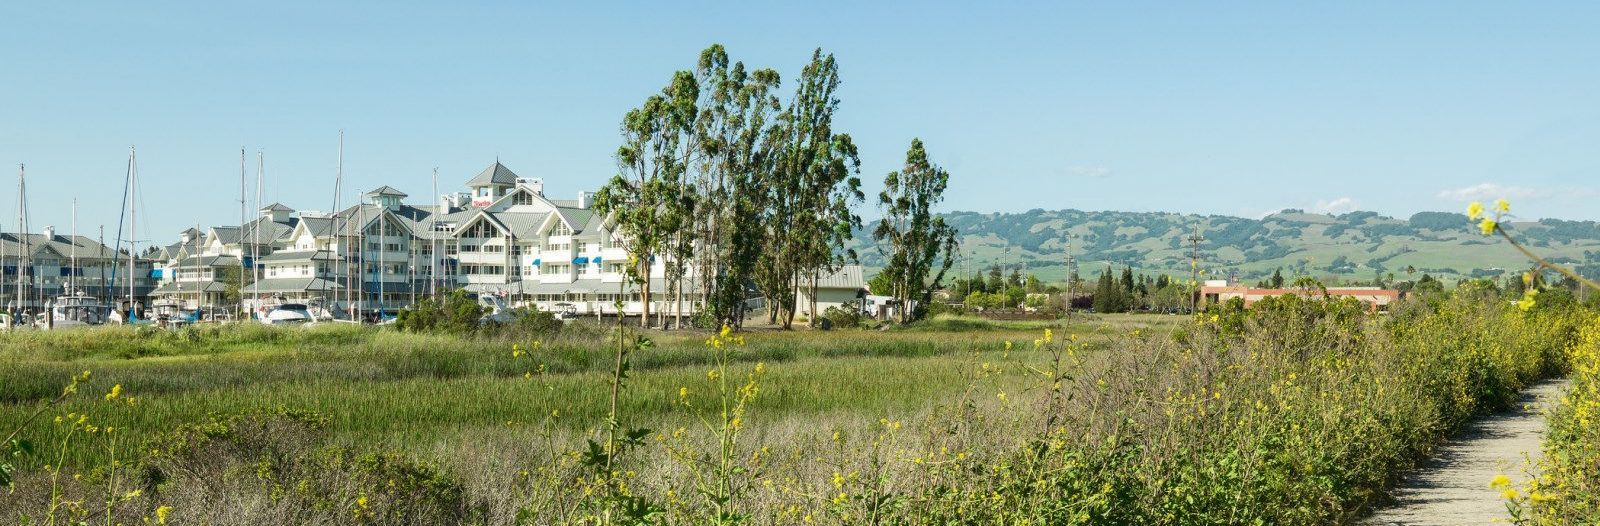 Travel green in Sonoma County at Sheraton Sonoma County - Petaluma hotel.